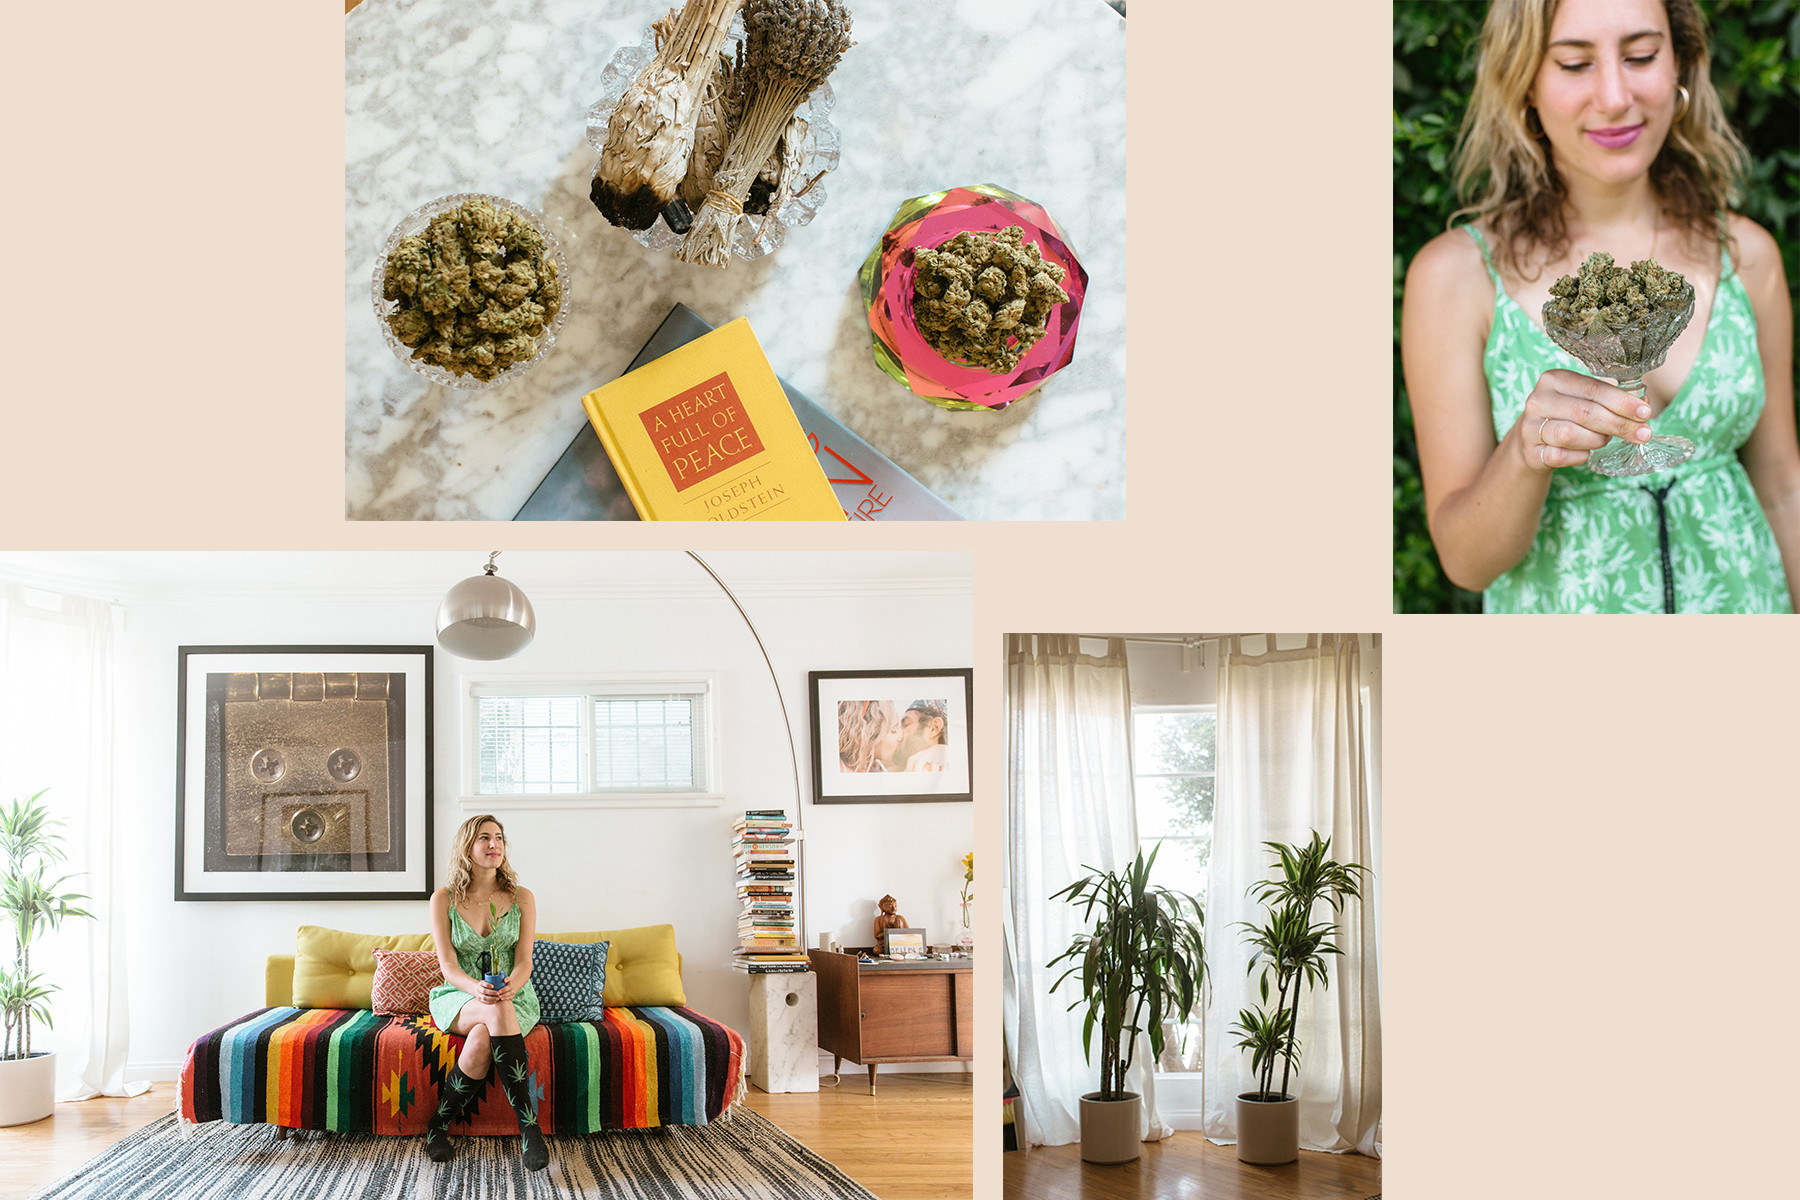 Weed Industry Women & Their Favorite Houseplants